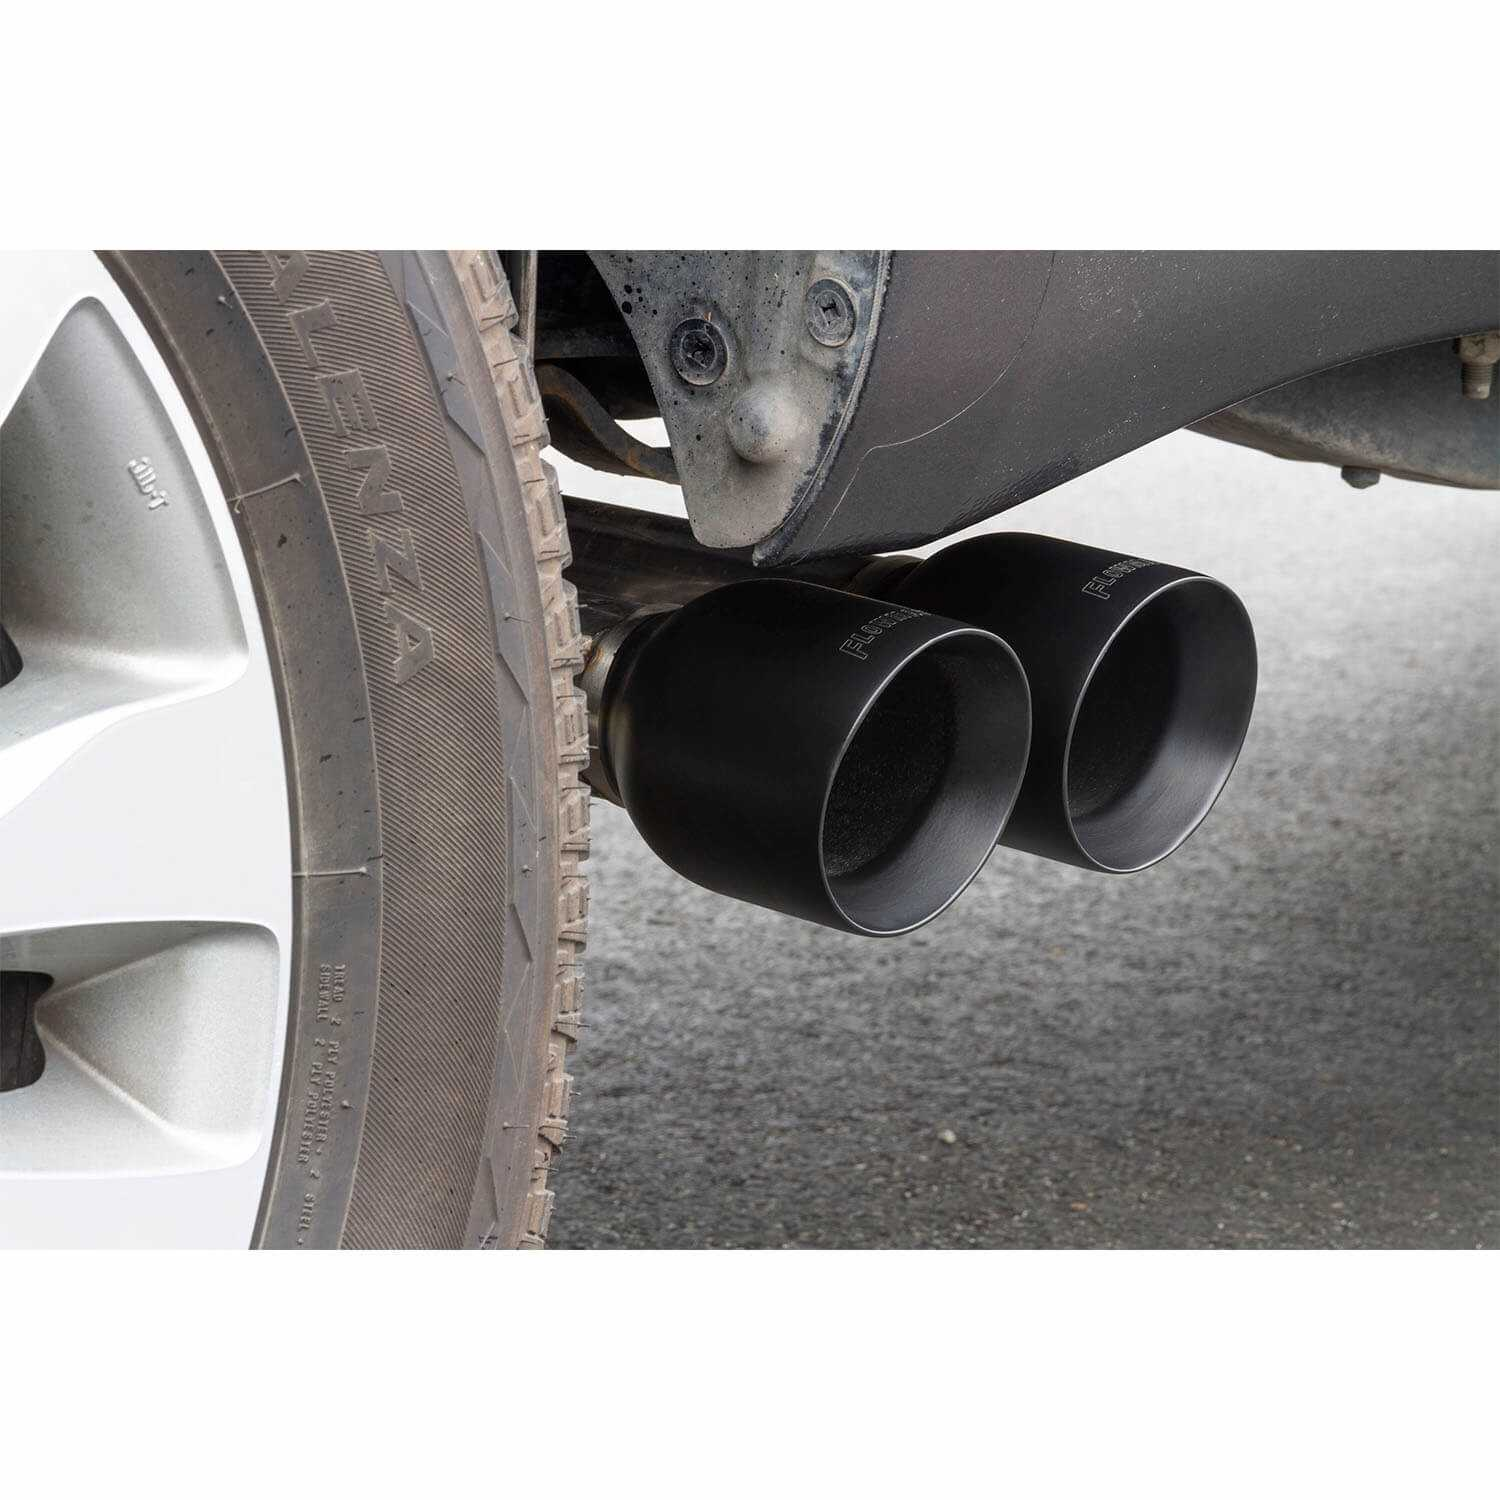 717786 Flowmaster FlowFX Cat-Back Exhaust System